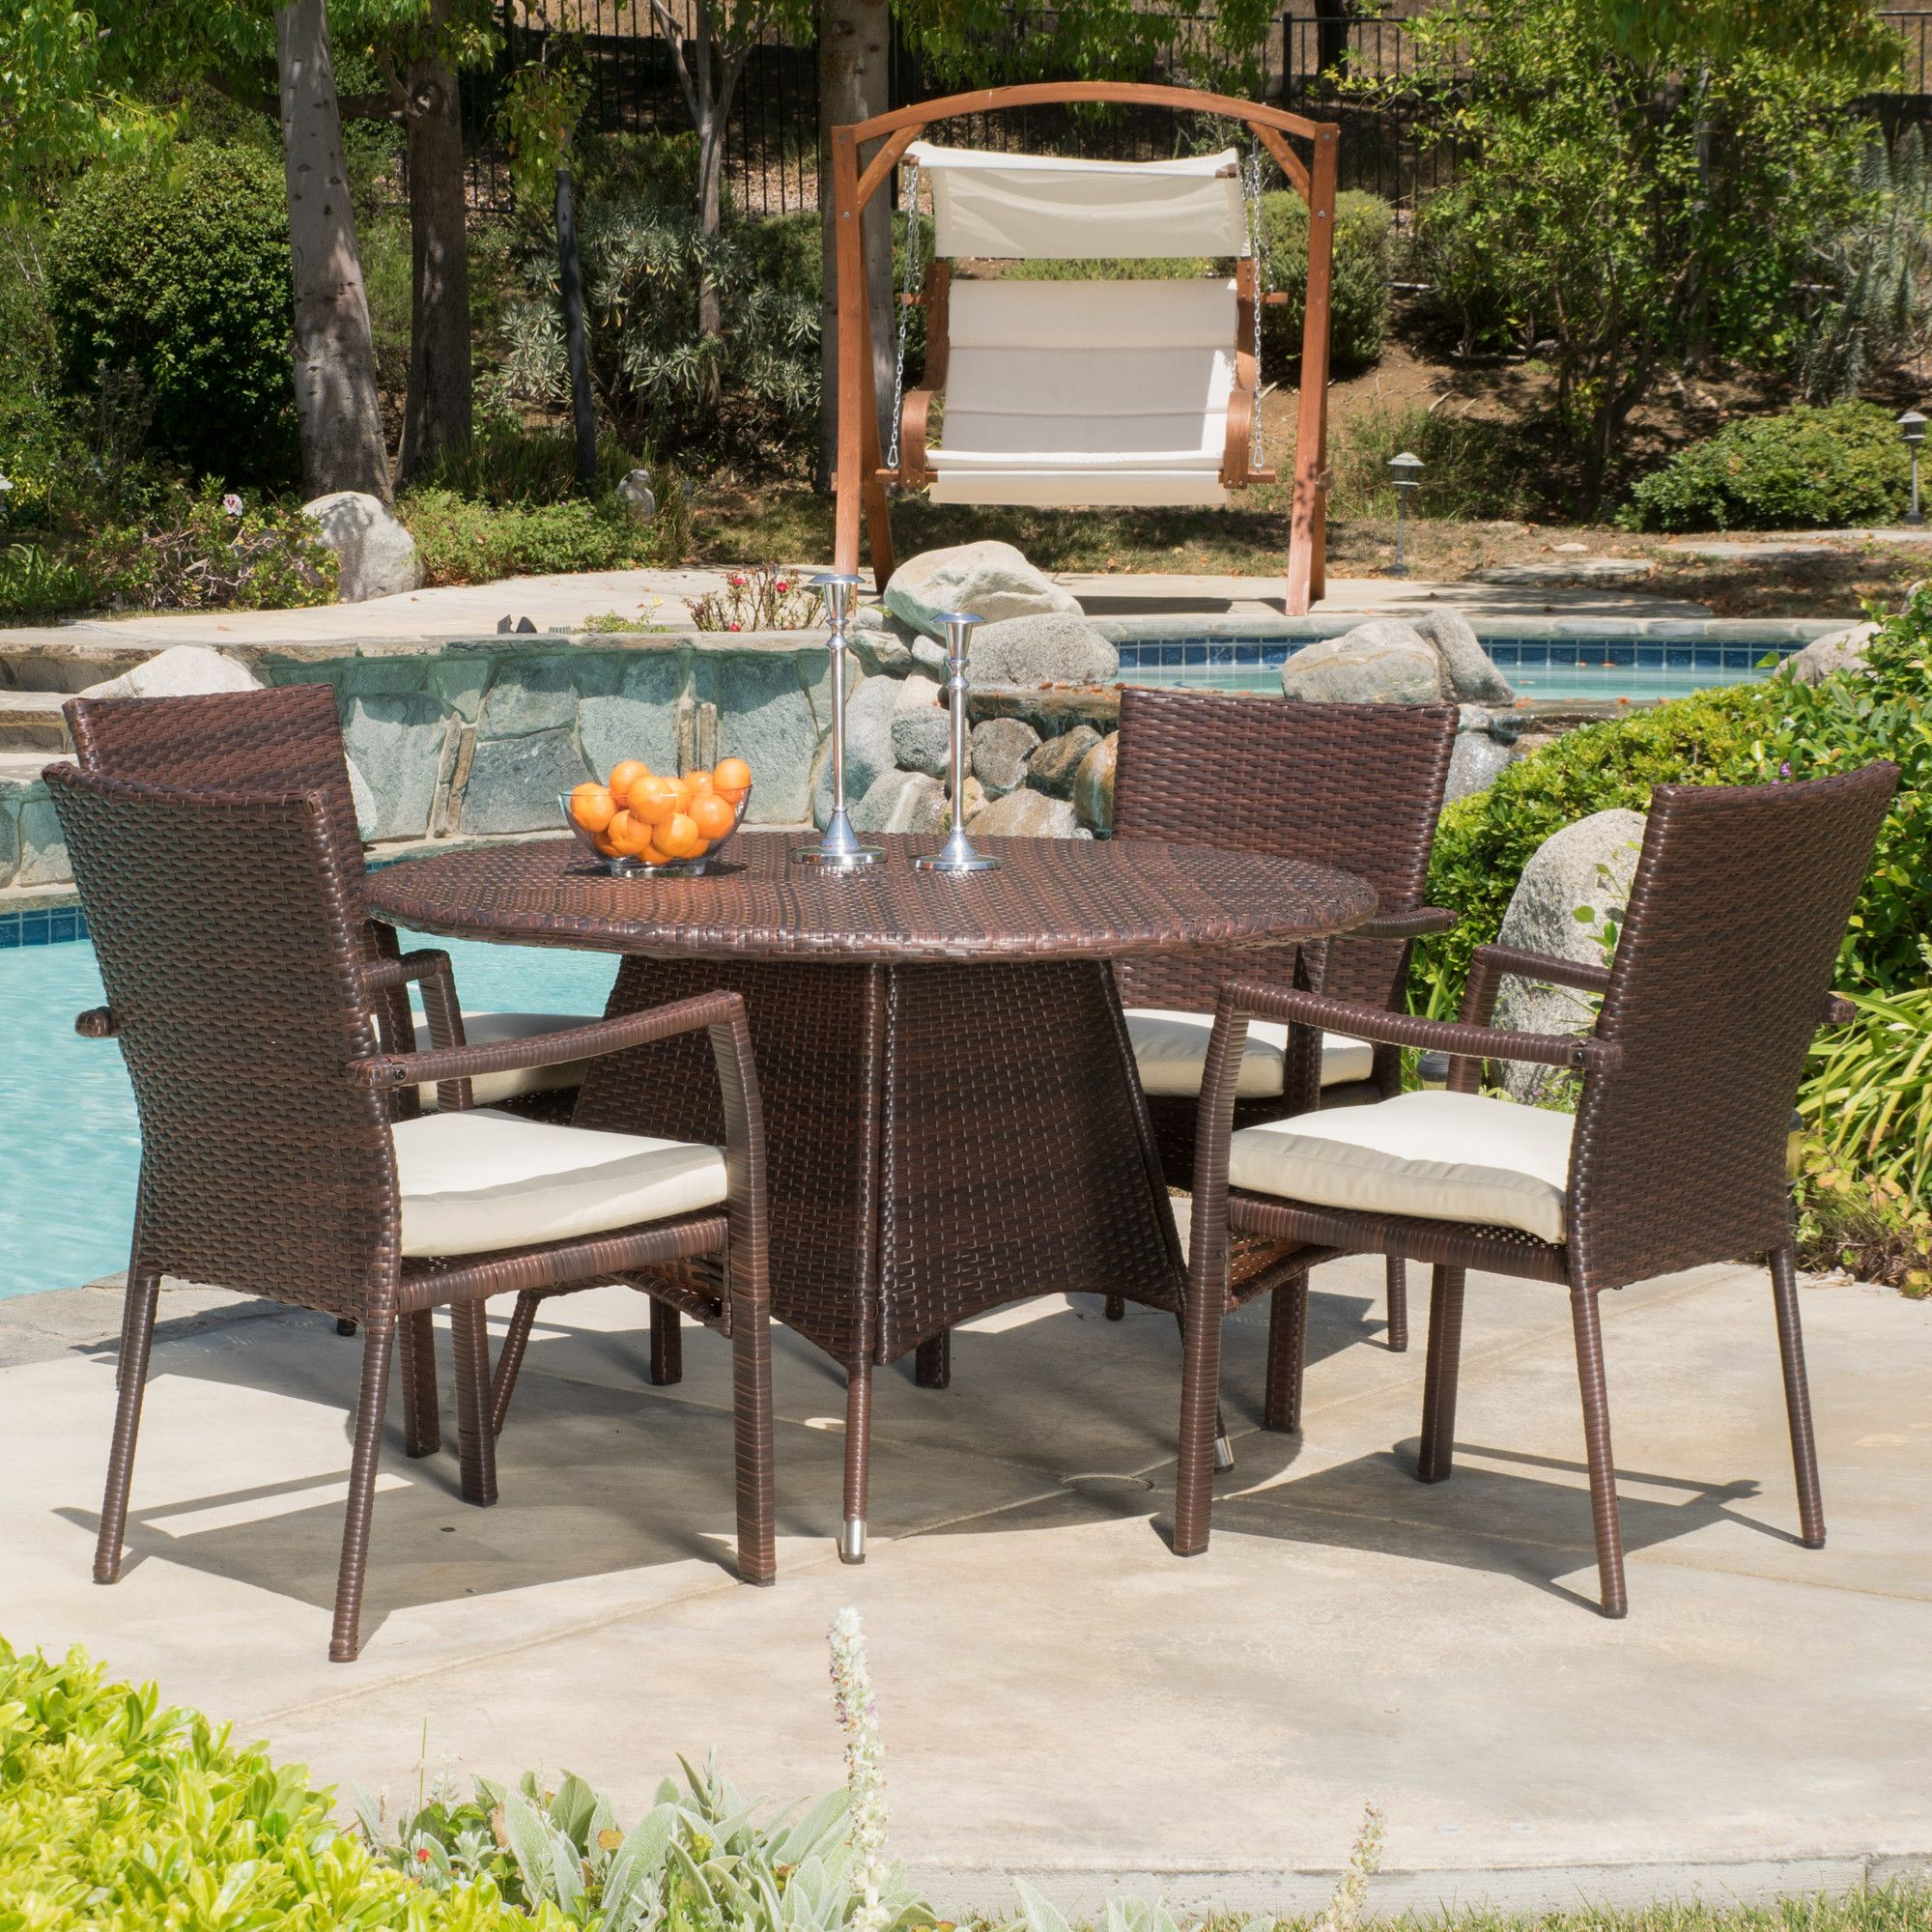 Superb Outdoor Best Selling Home Vernon 5 Piece Wicker Patio Dining Set   295813